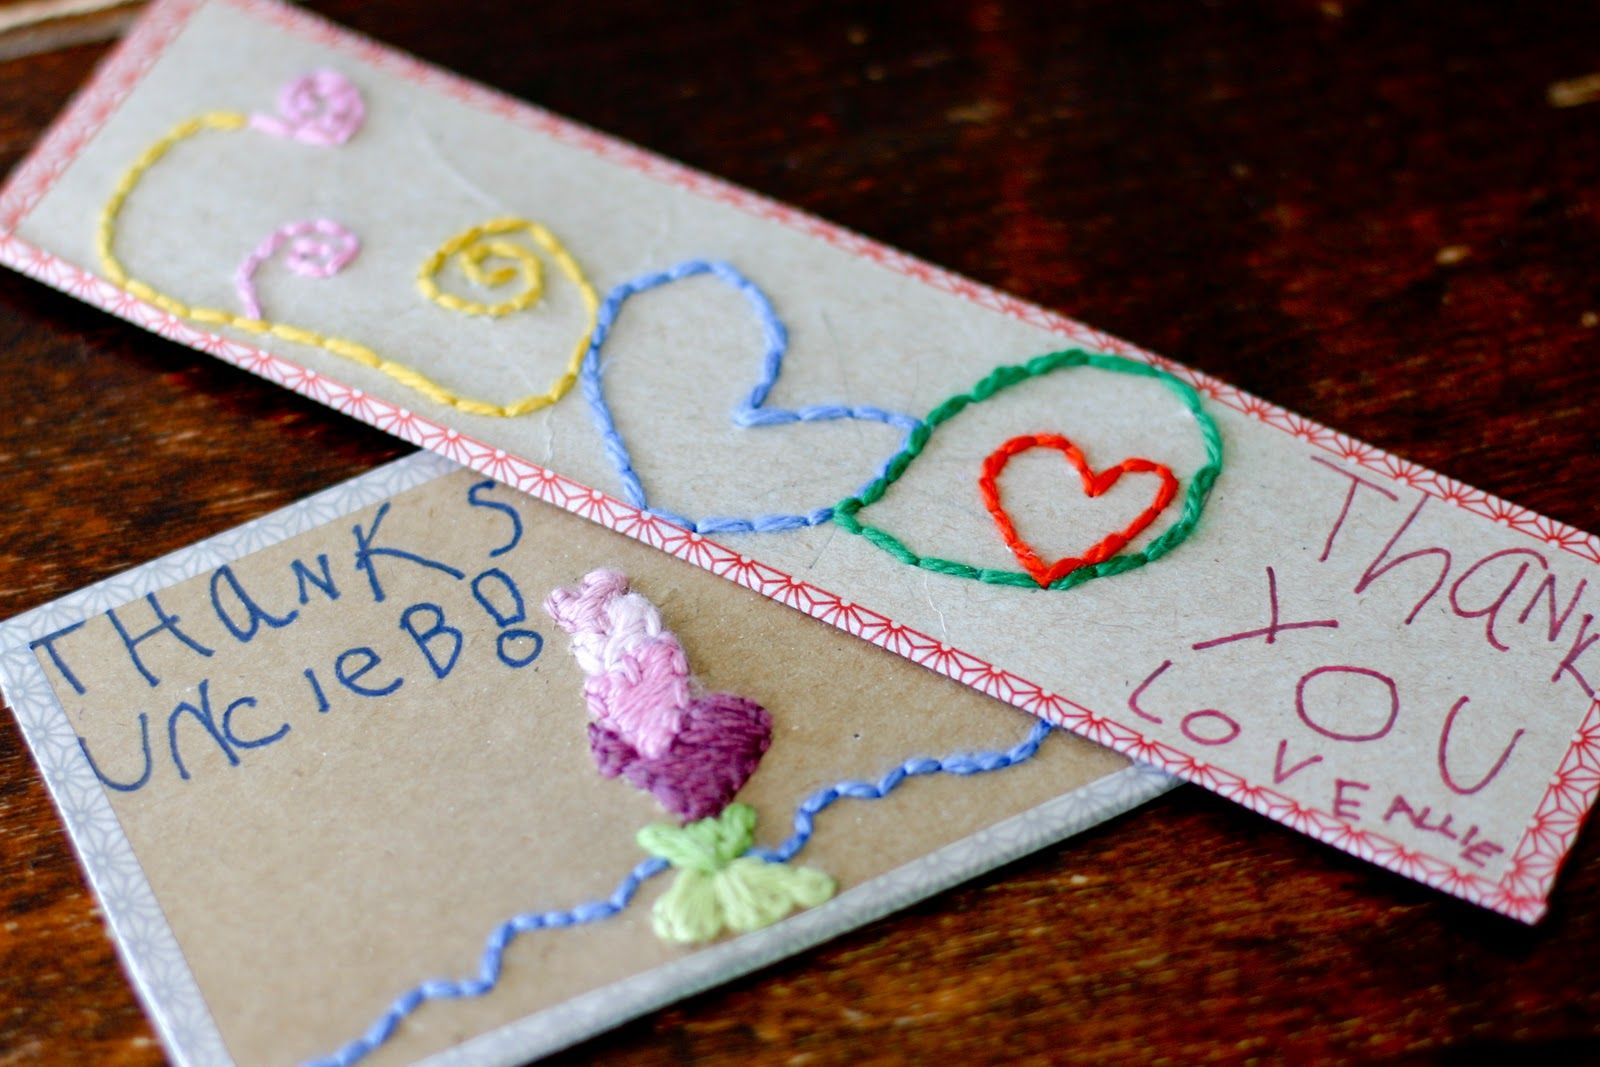 Hand embroidered note cards for the kids to make twine crafts